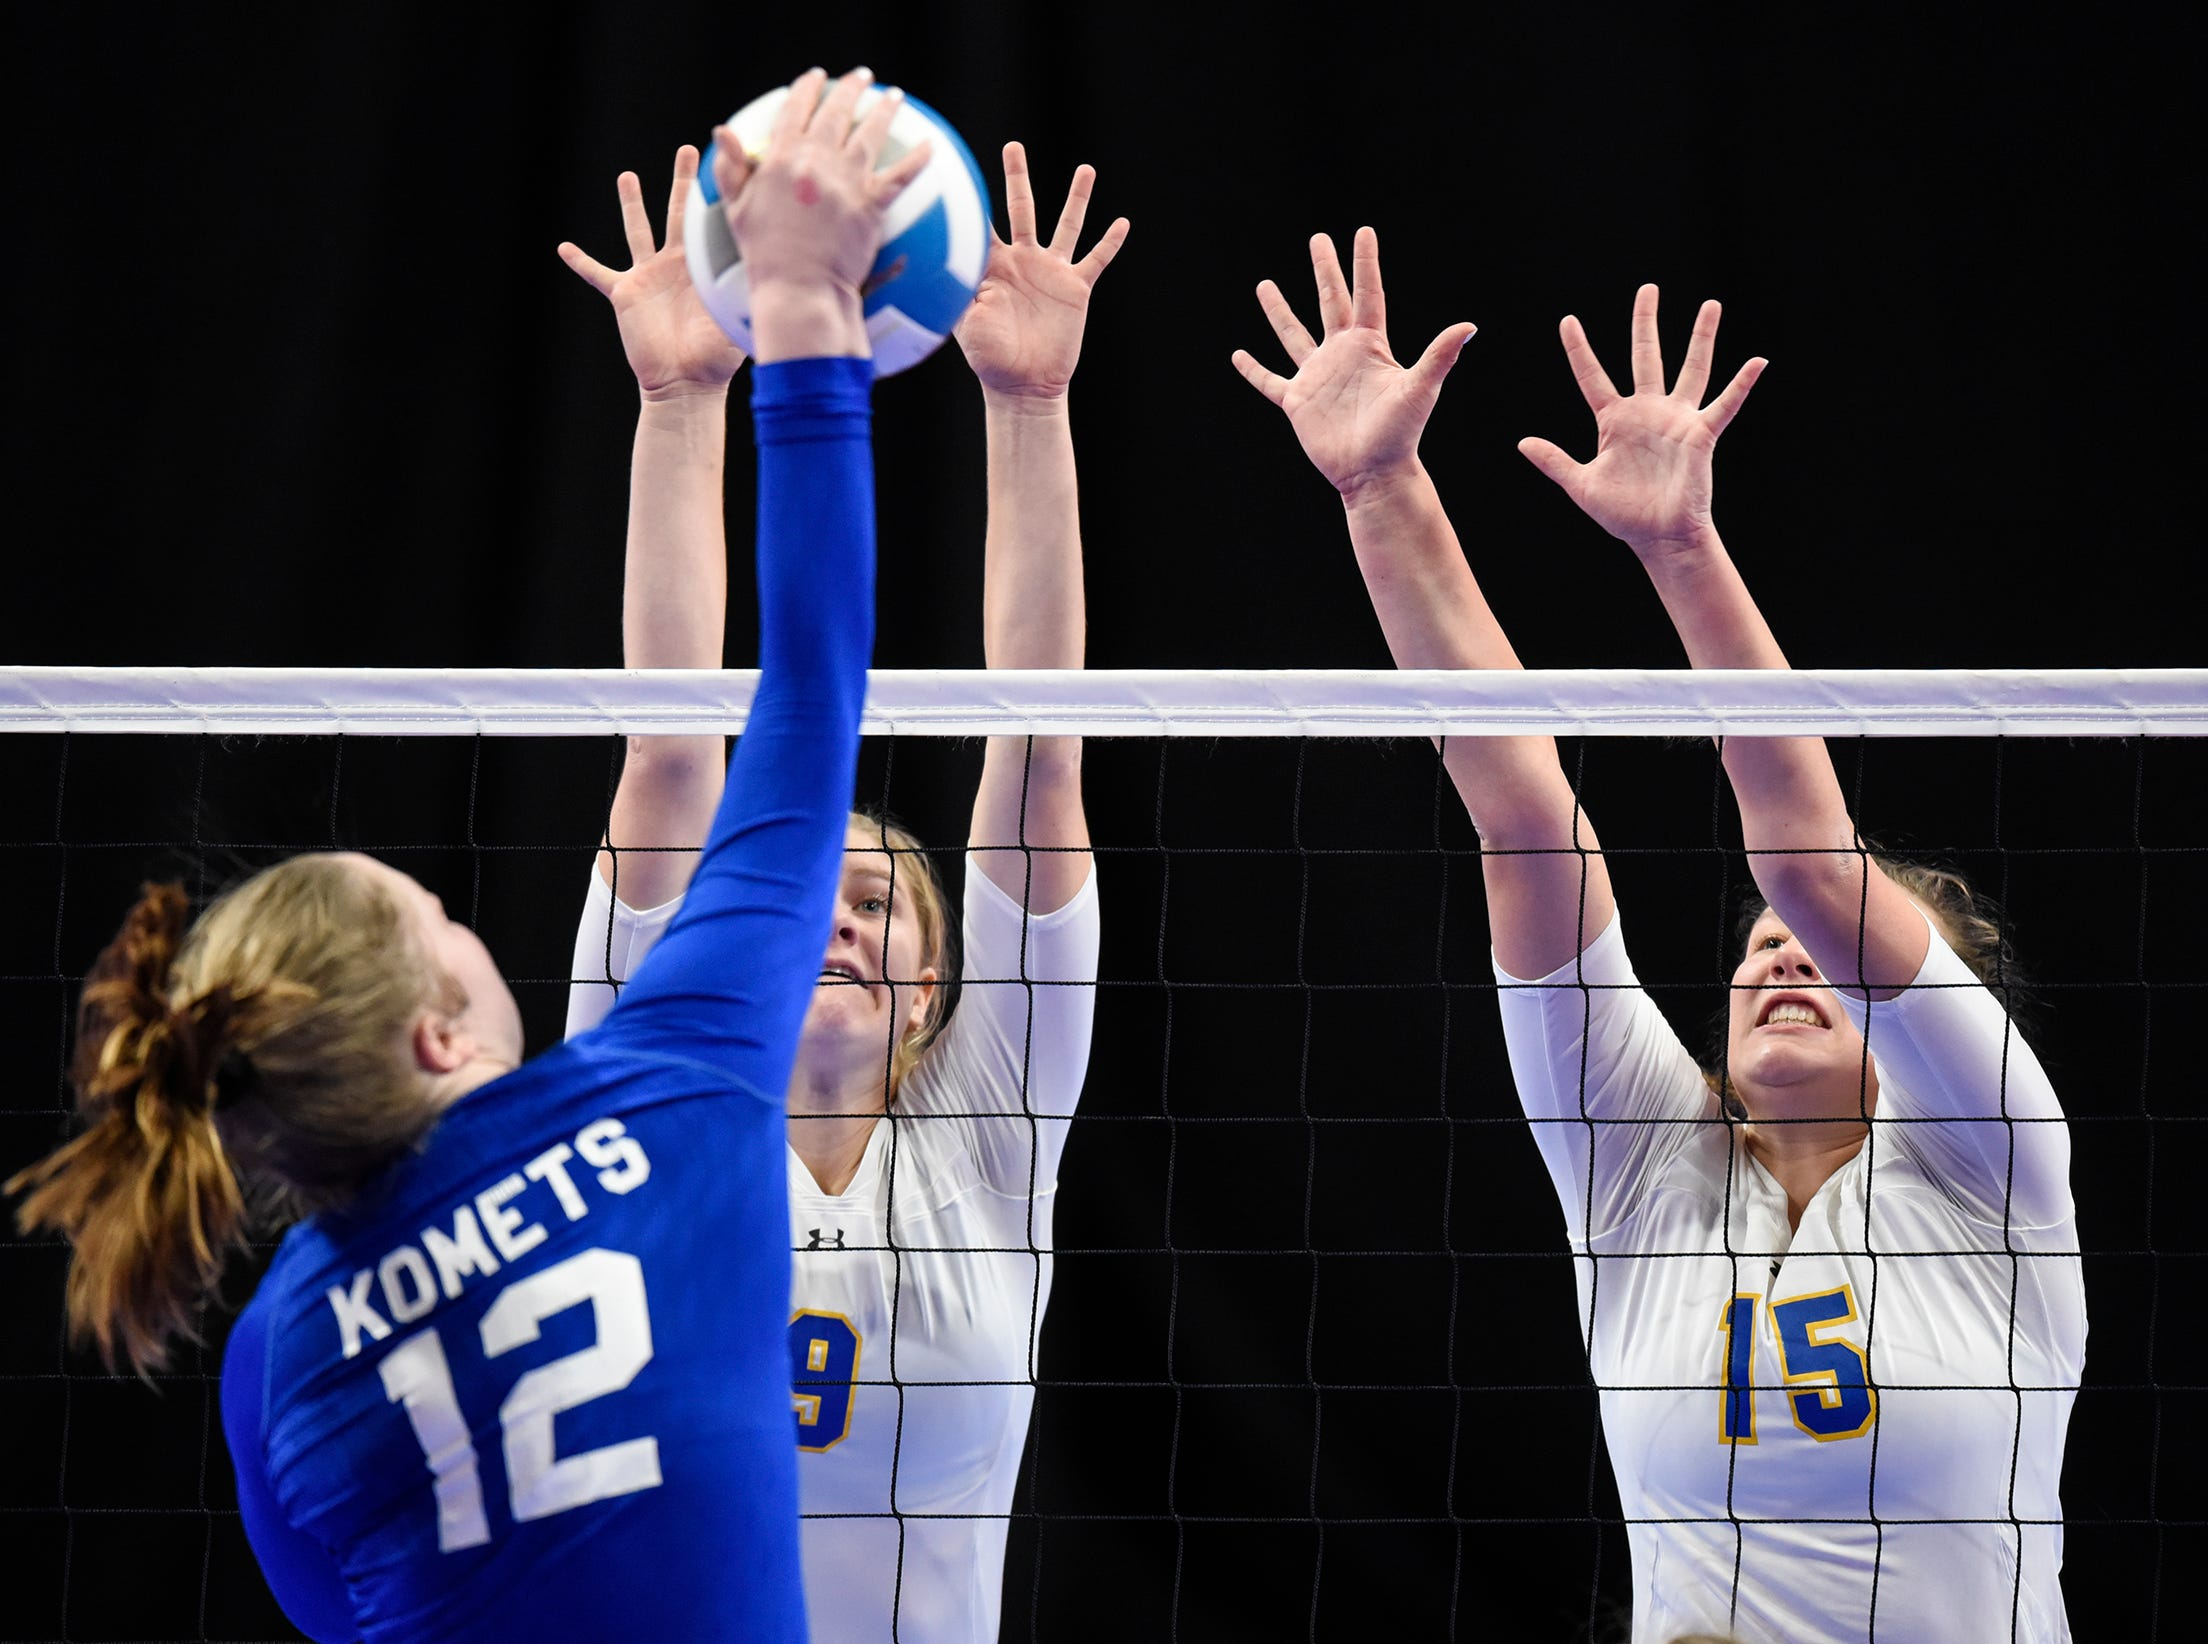 Meg Januschka and Gabby Heying leap for a block for Cathedral during the state Class 2A quarterfinals Thursday, Nov. 8, at the Xcel Energy Center in St. Paul.